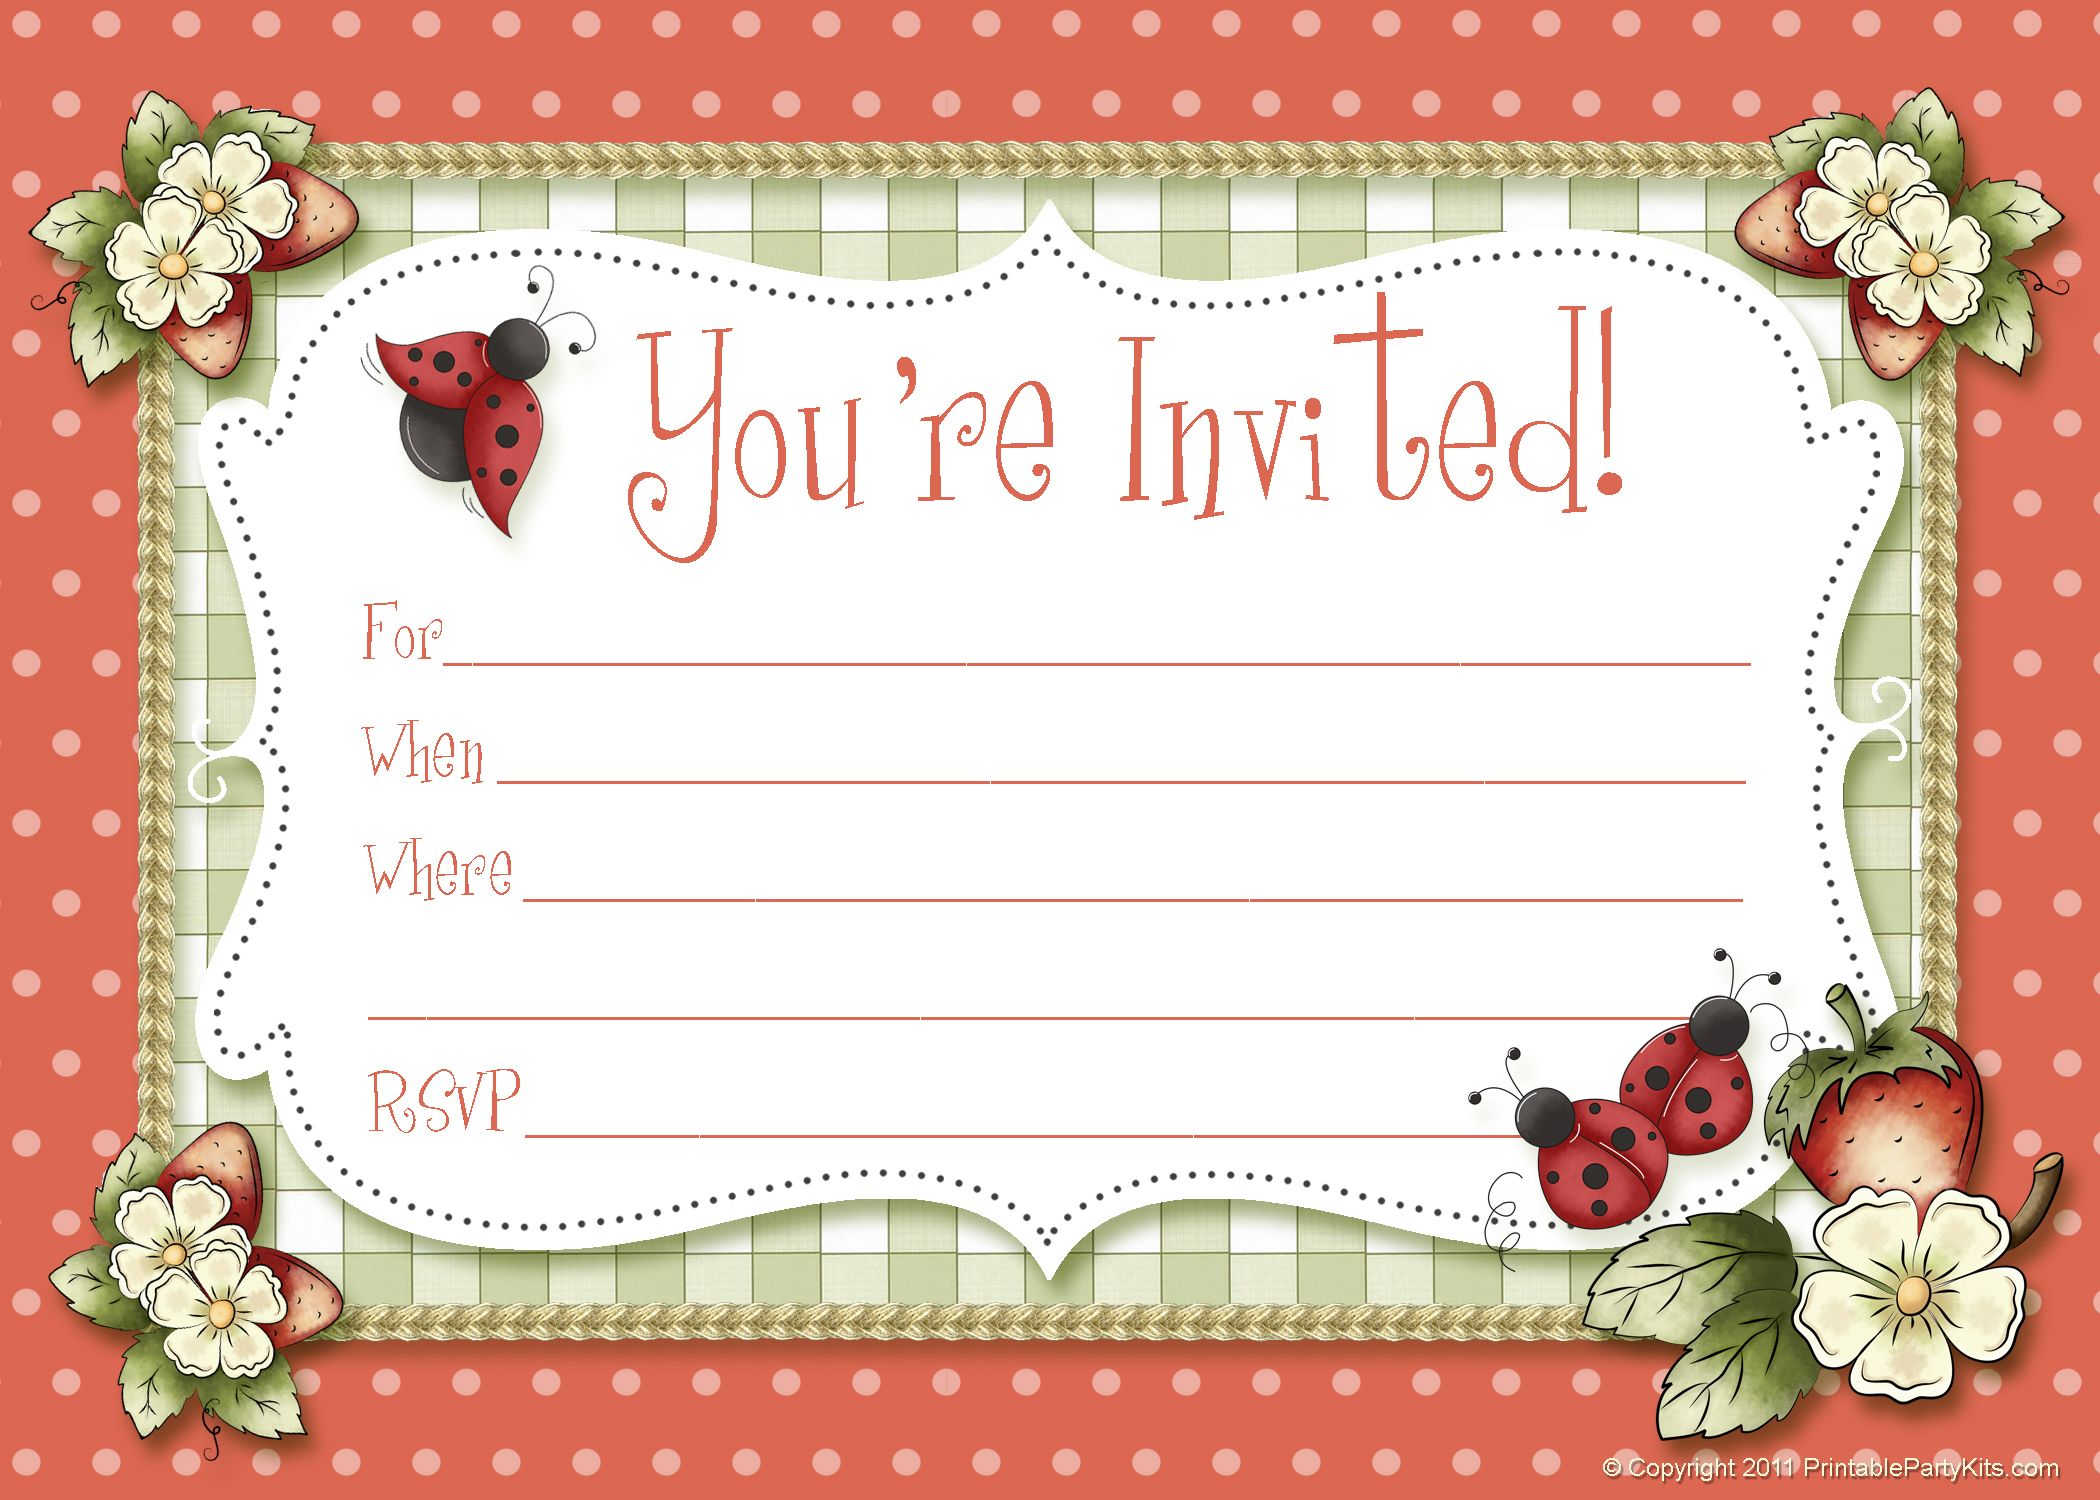 Beaufiful Birthday Party Invitation Template Free Online Images - Birthday invitation card maker free online